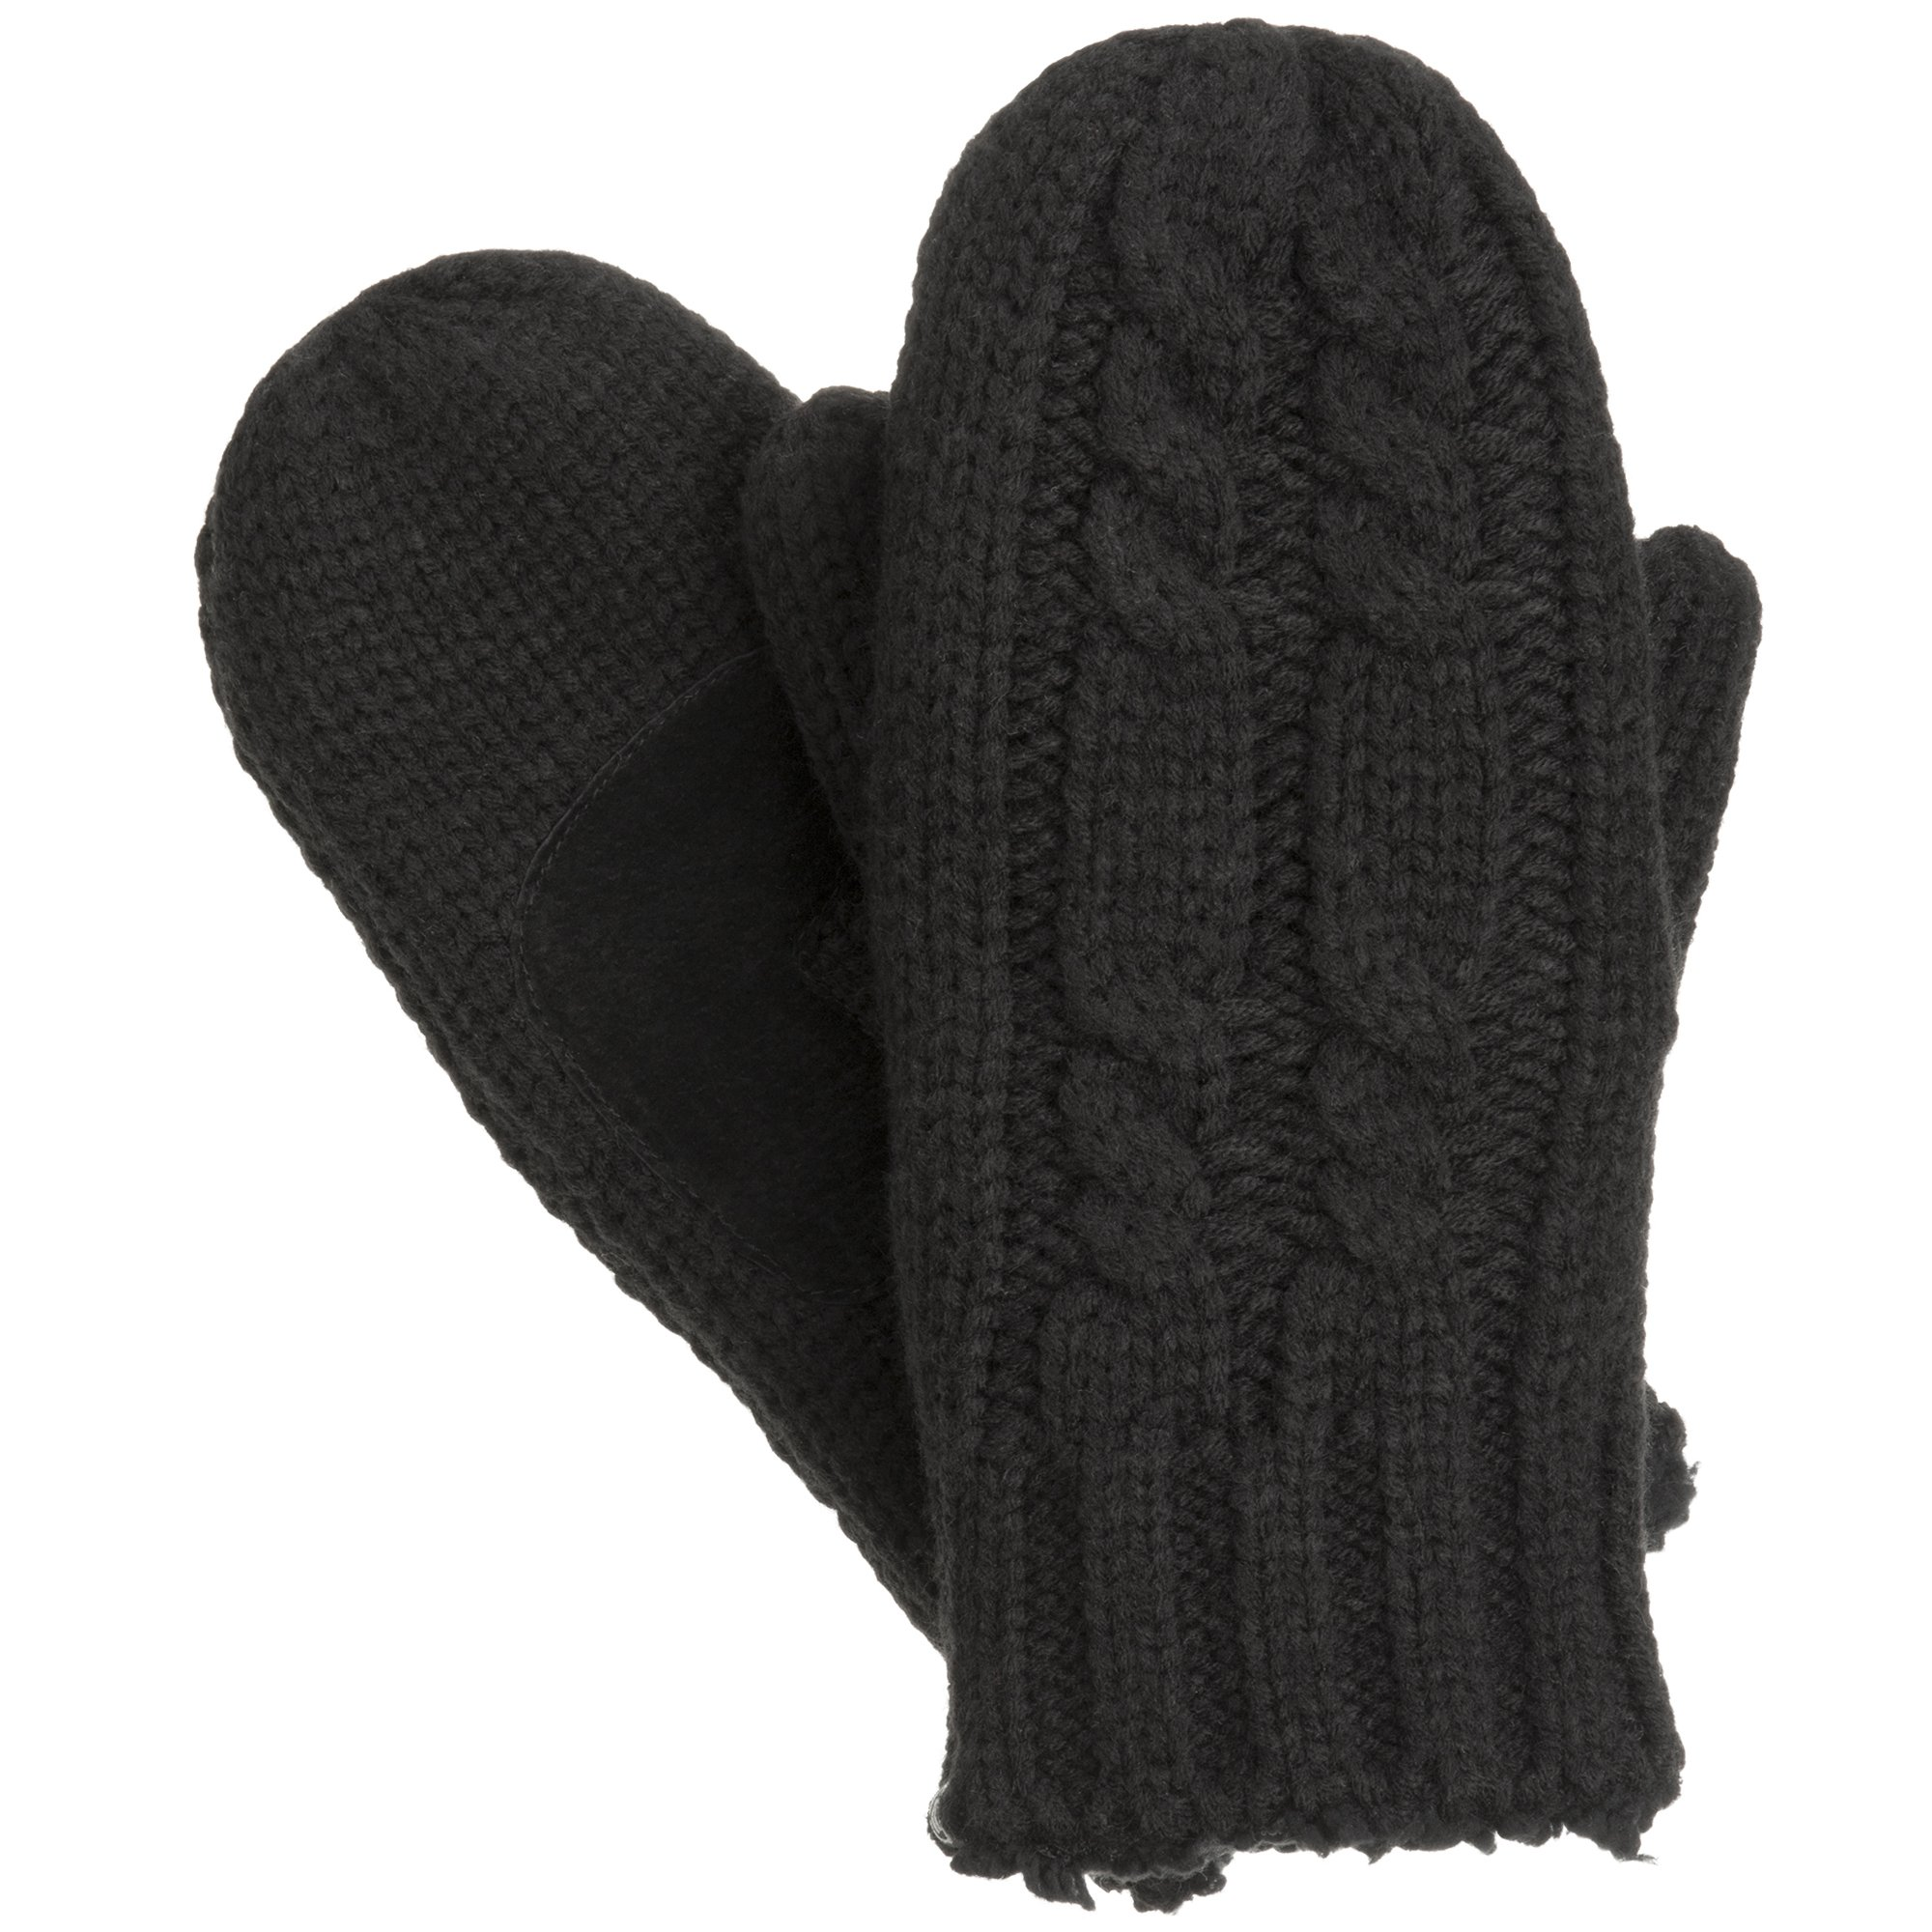 isotoner Women's Chunky Cable Knit Cold Weather Mittens with Warm, Soft Lining by ISOTONER